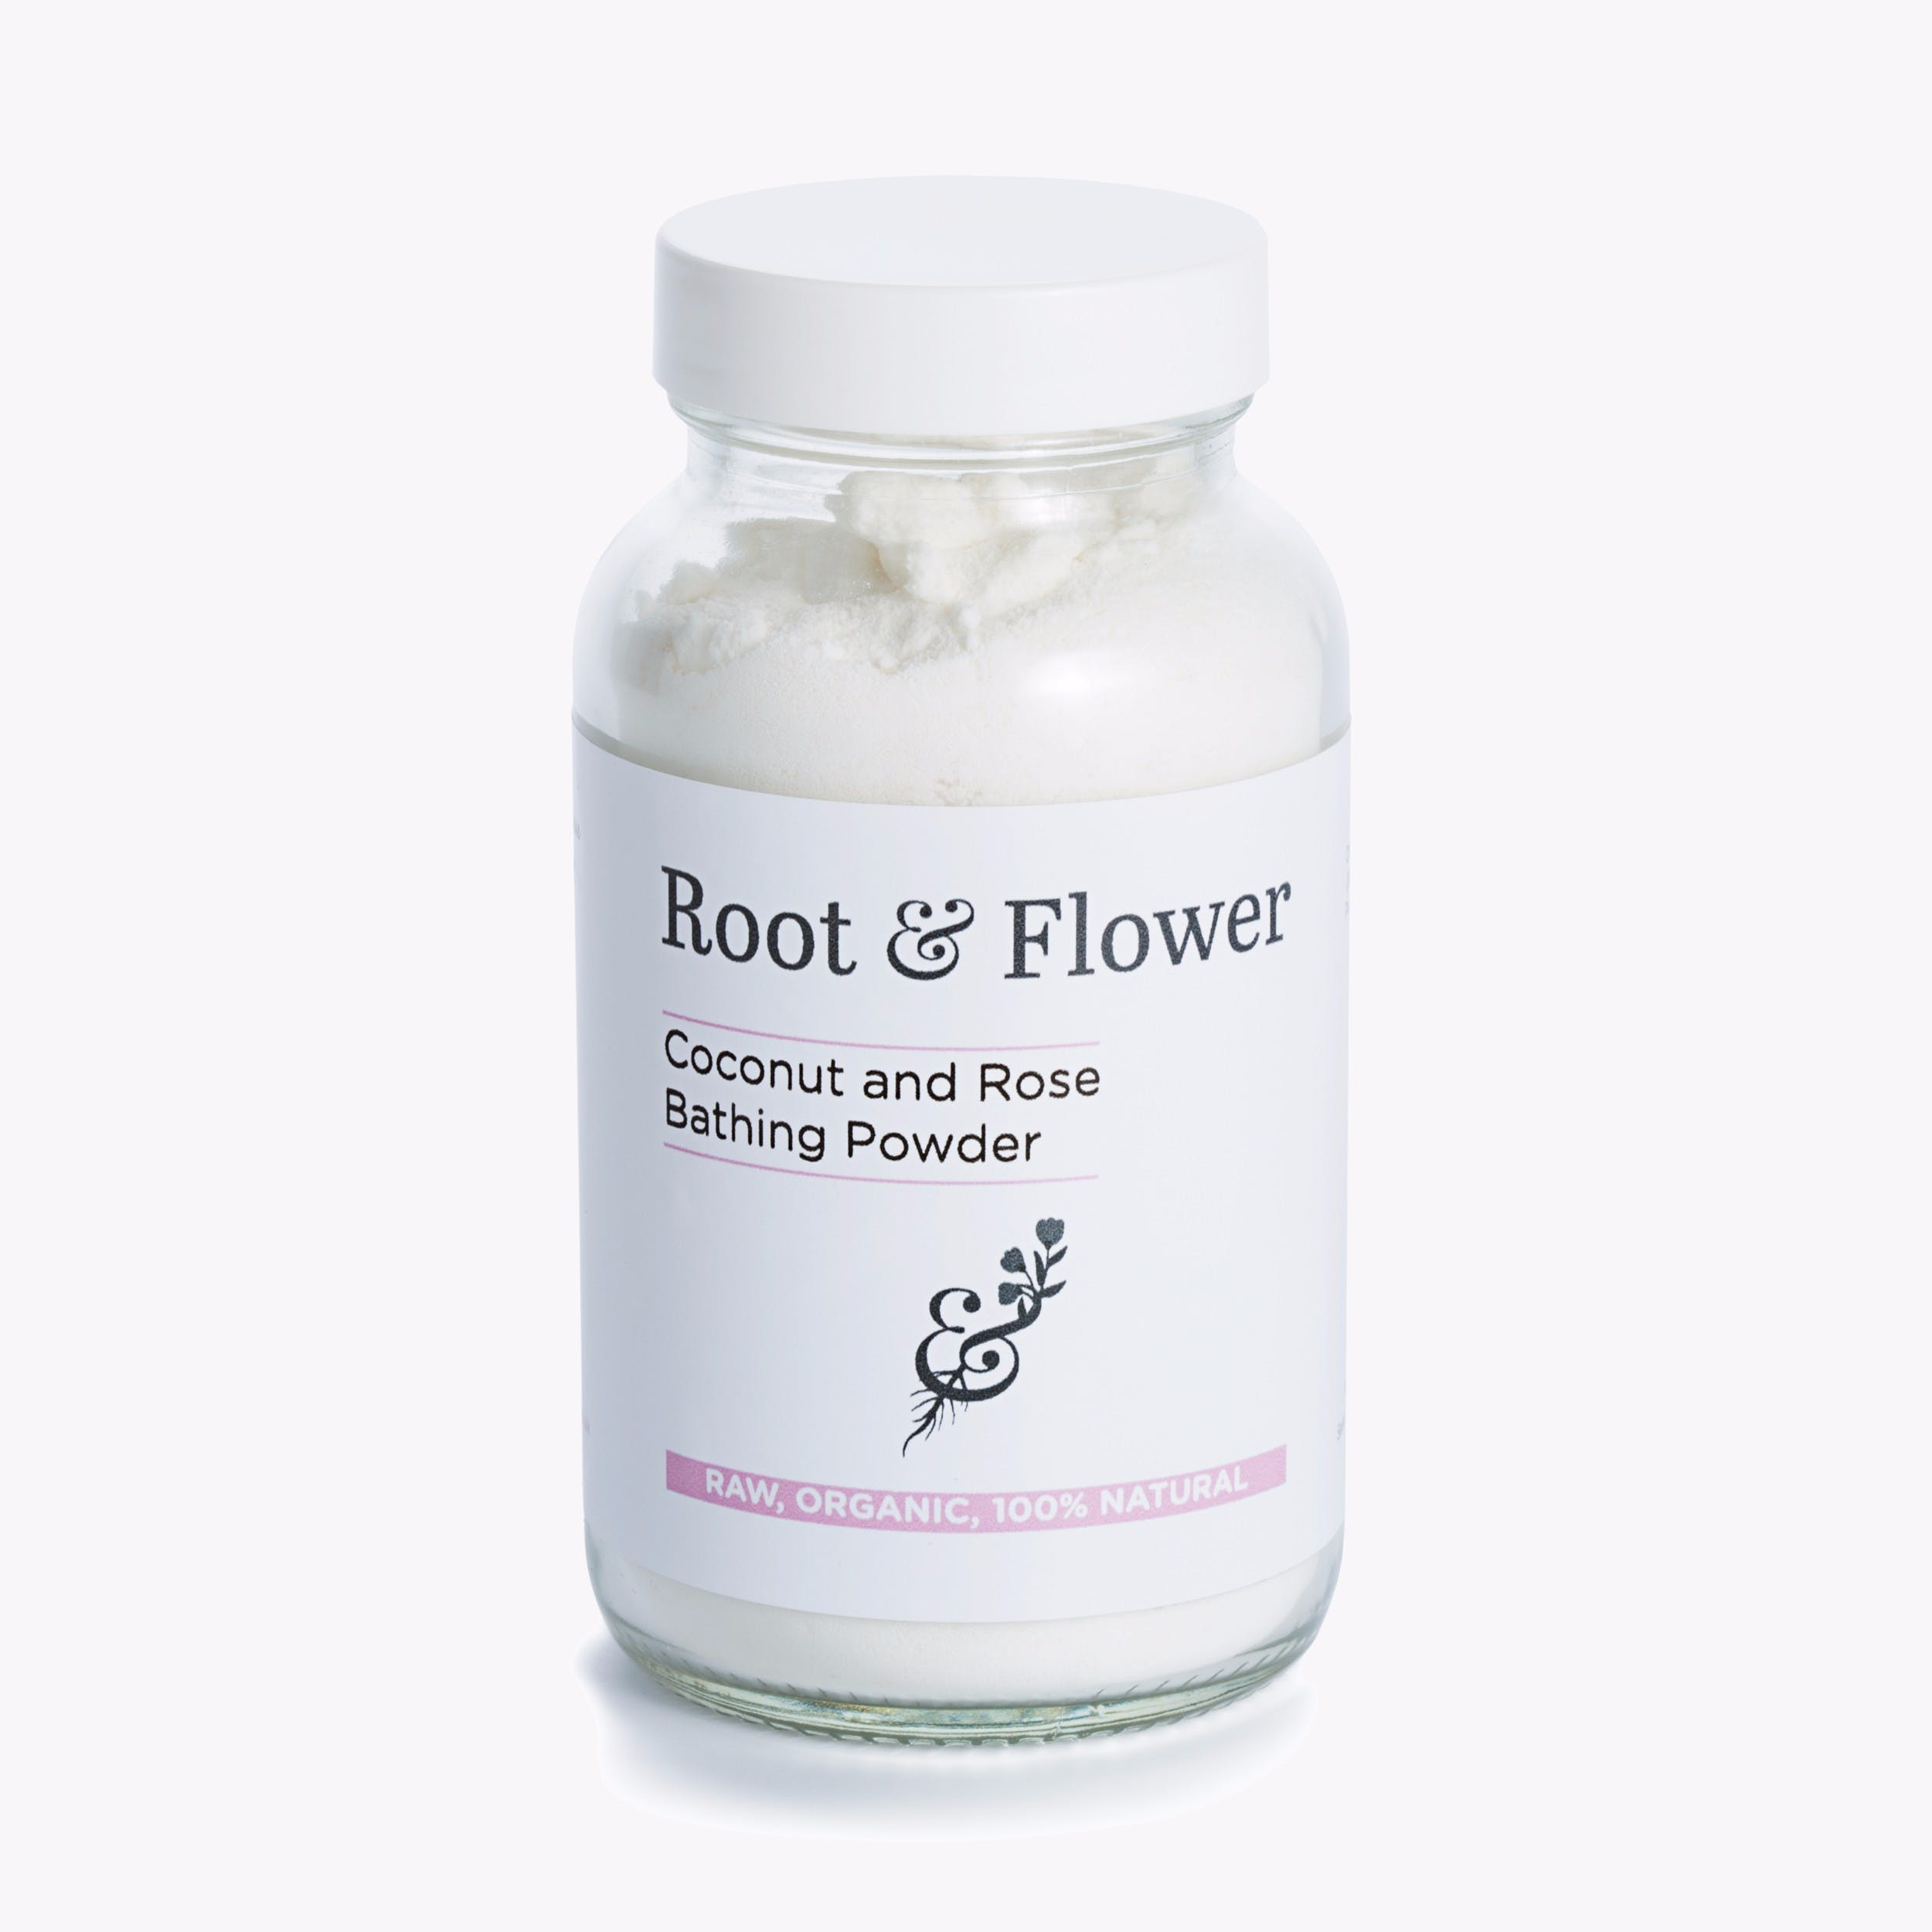 Coconut & Rose Bathing Powder 250g